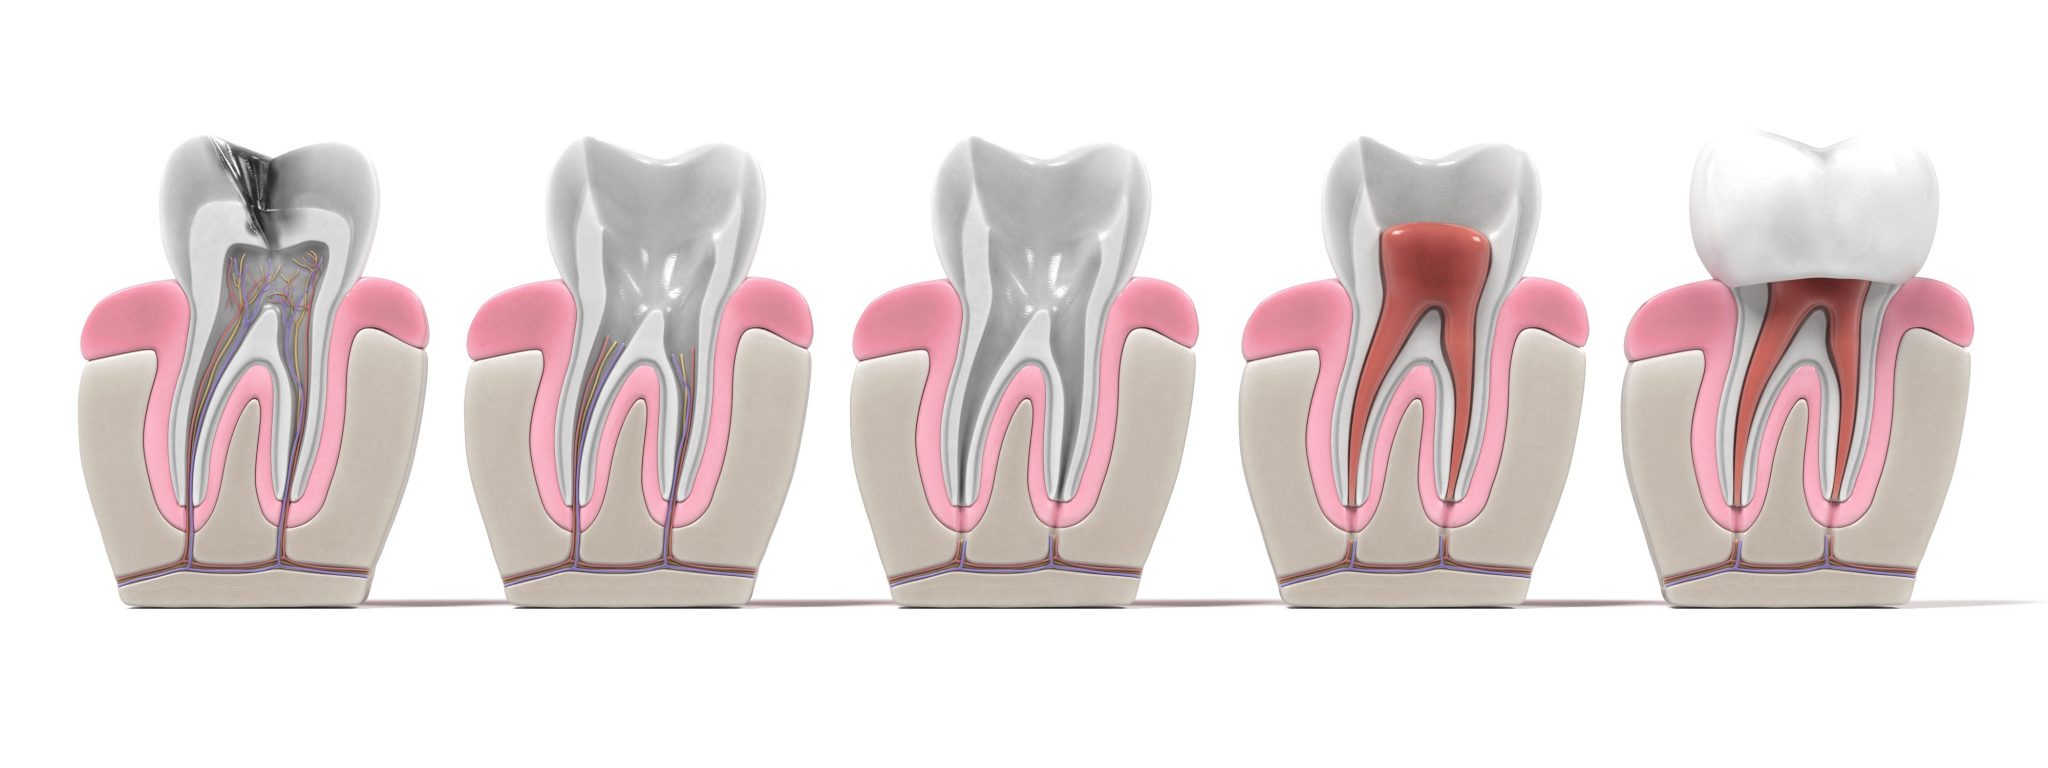 3d Renderings Of Endodontics Root Canal Procedure